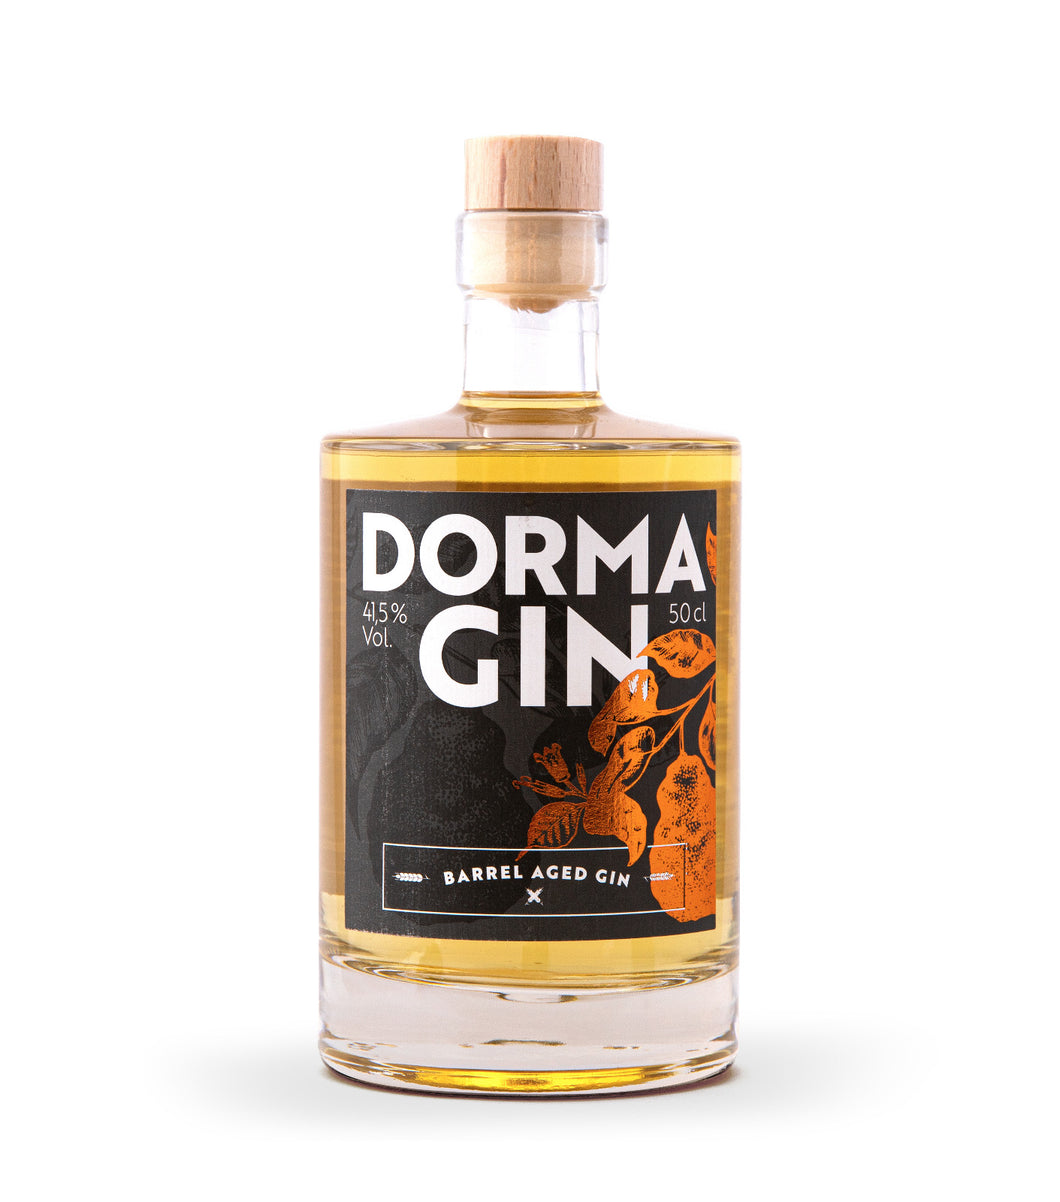 DormaGIN - Barrel Aged Premium Dry Gin 50cl